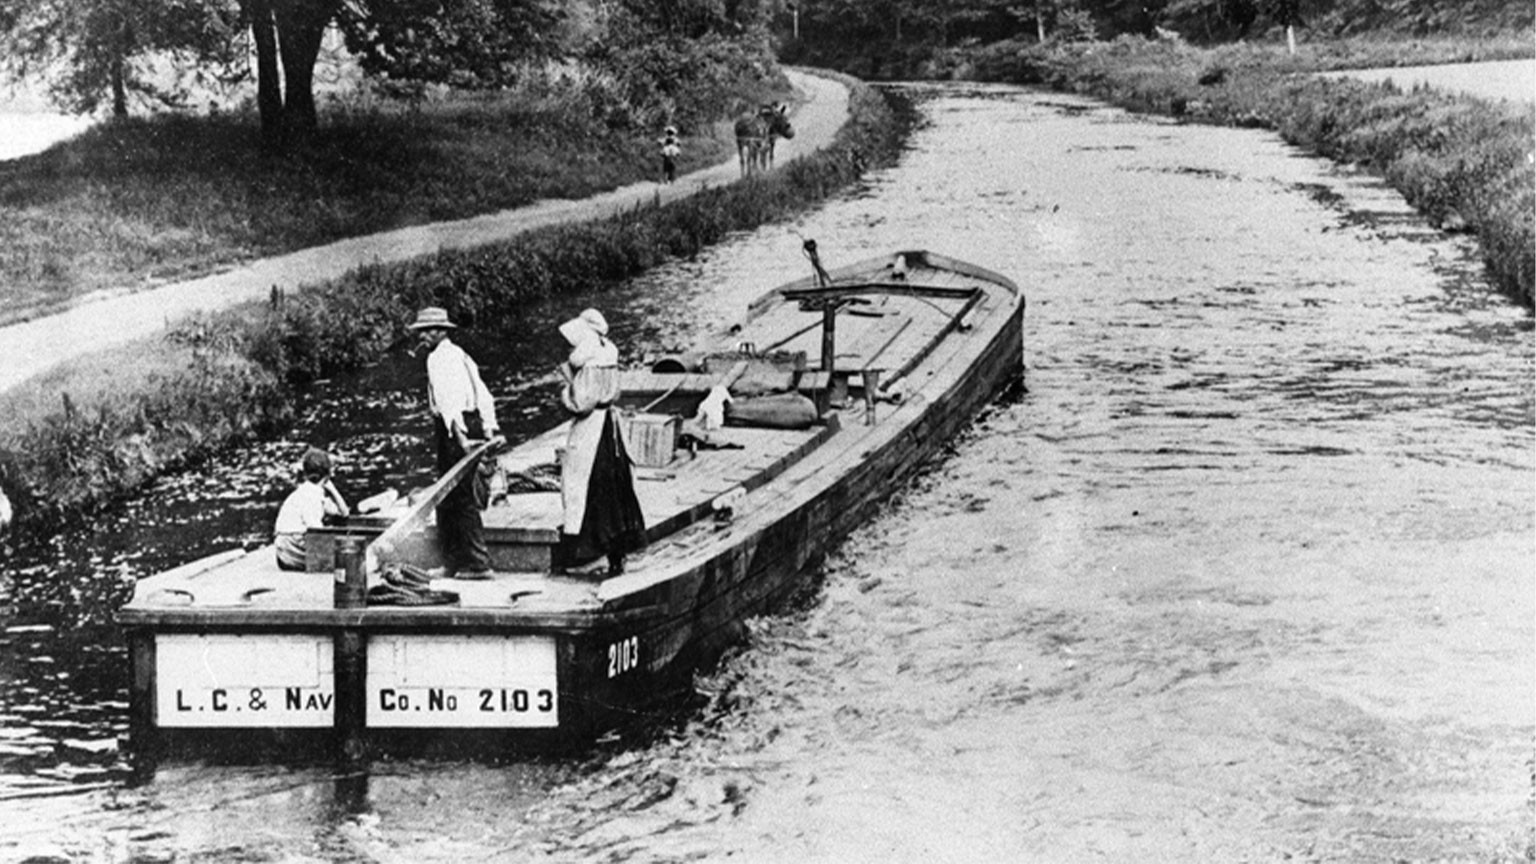 In this photo you can see the captain at the tiller, his wife and daughter on the boat and the mule tender ahead of them on the towpath with the mules.